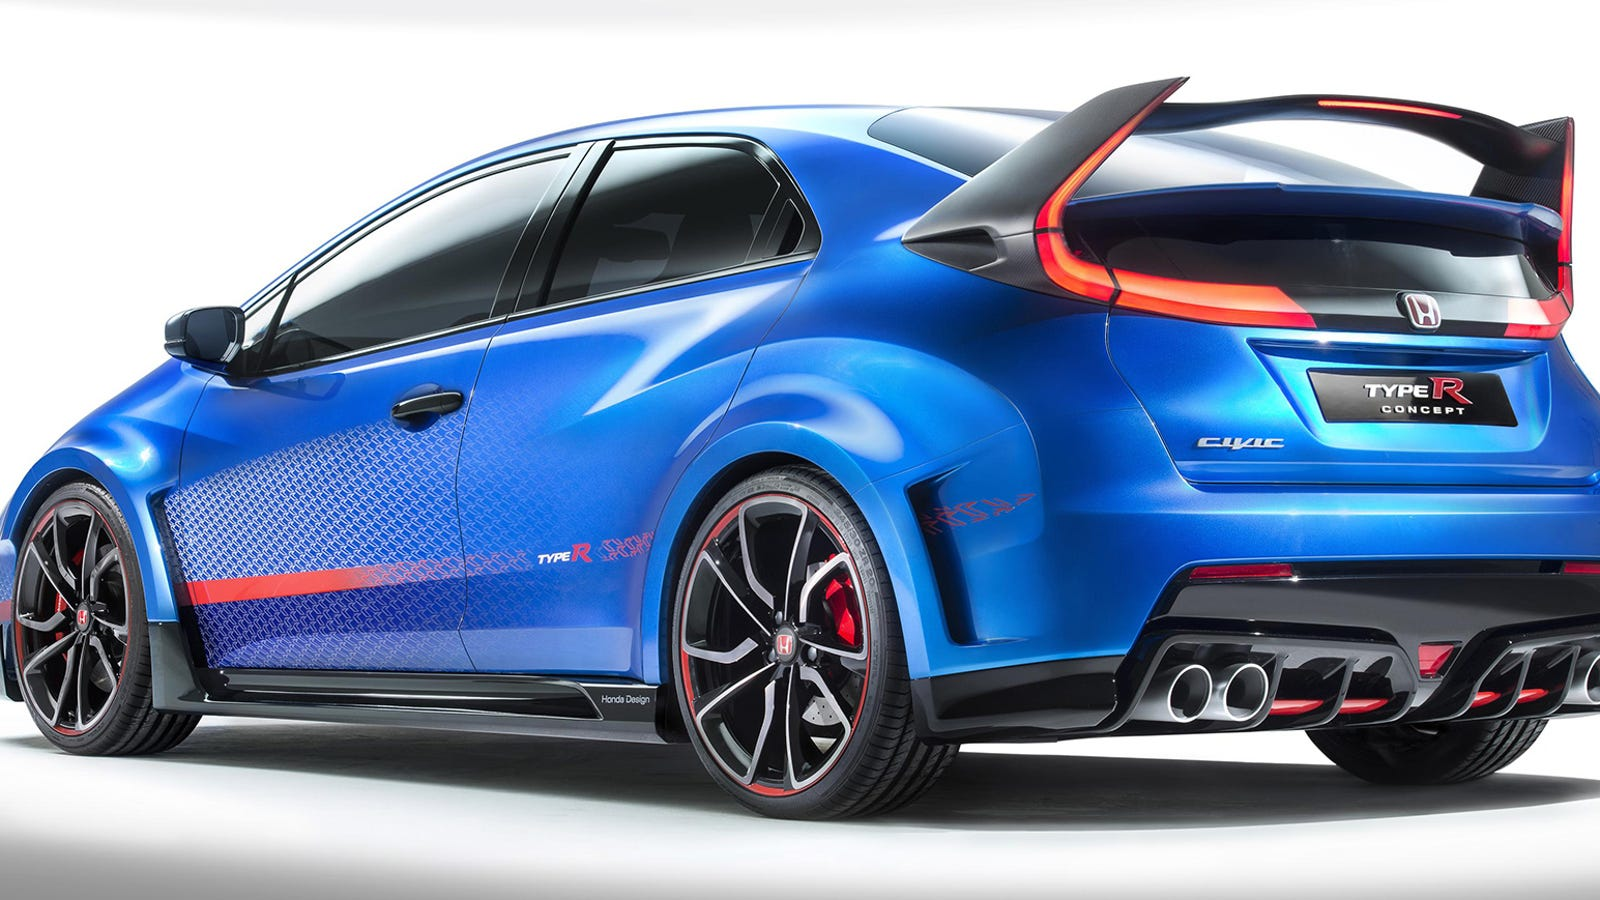 The 276 hp honda civic type r will be the most extreme for Honda type r horsepower